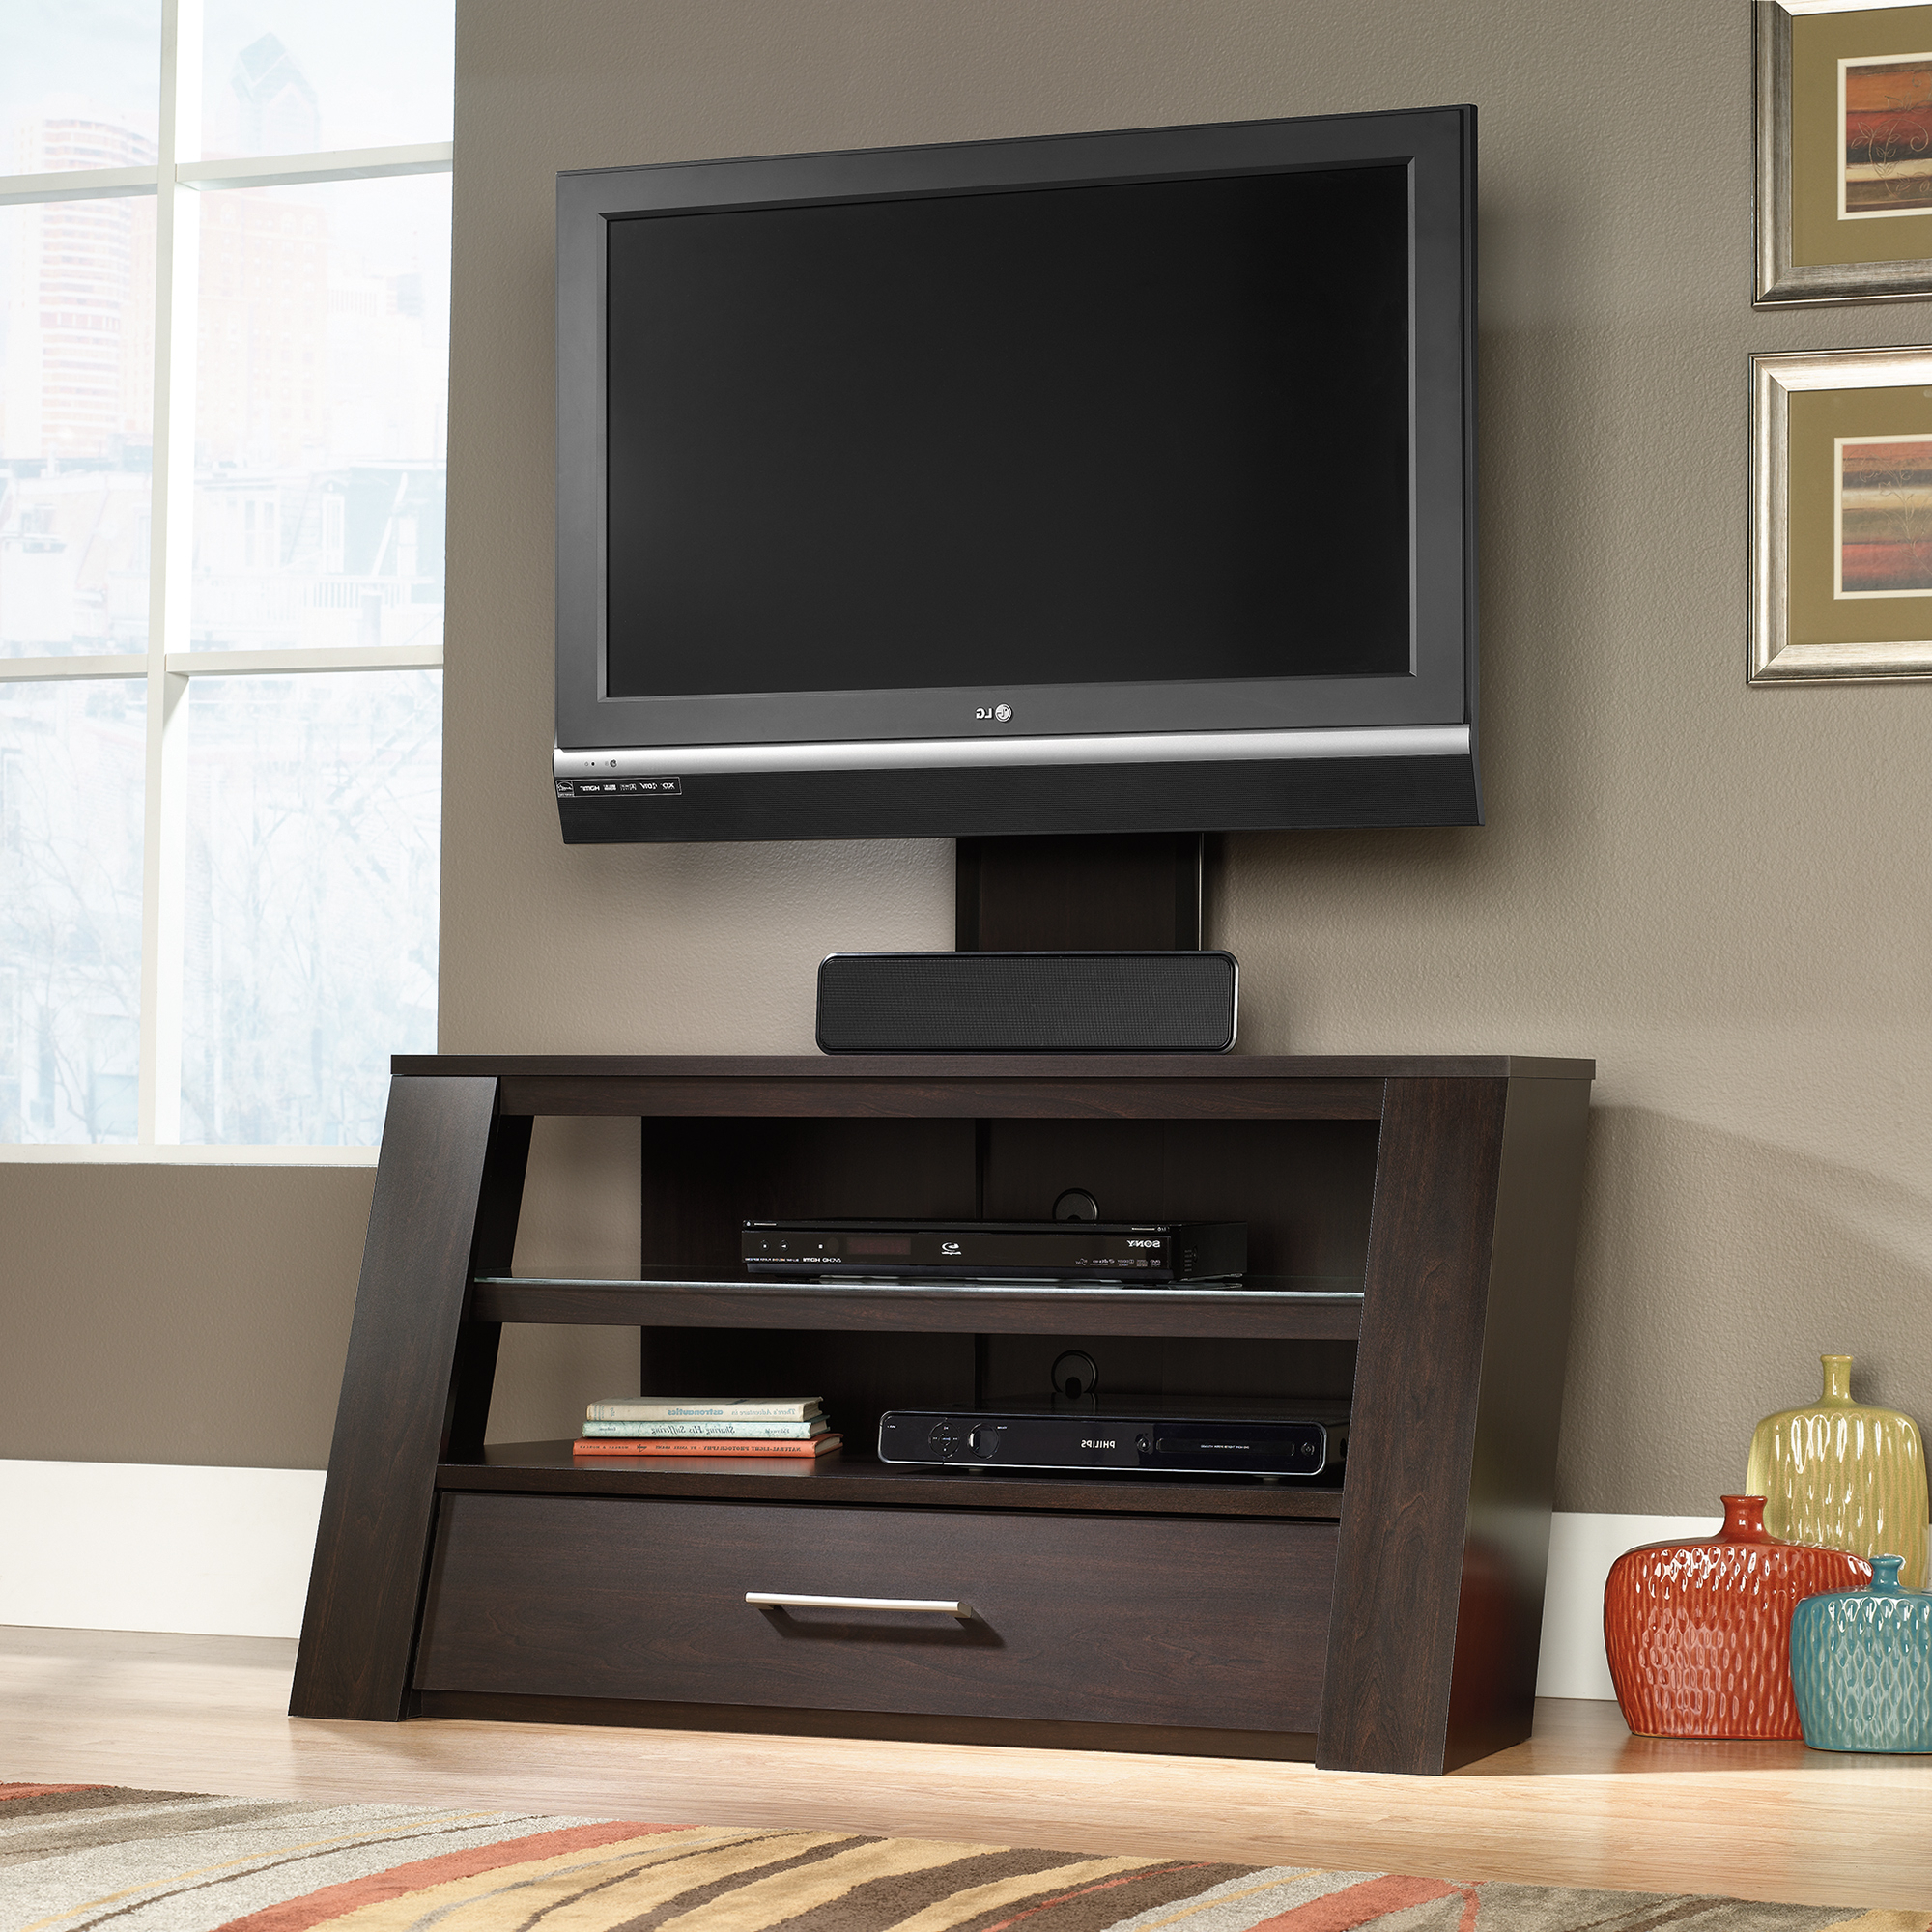 Tv Entertainment Units Stand Buy Wall Mount Cabinets For Sale Sauder With Regard To Well Known Tv Stands Corner Units (View 17 of 20)